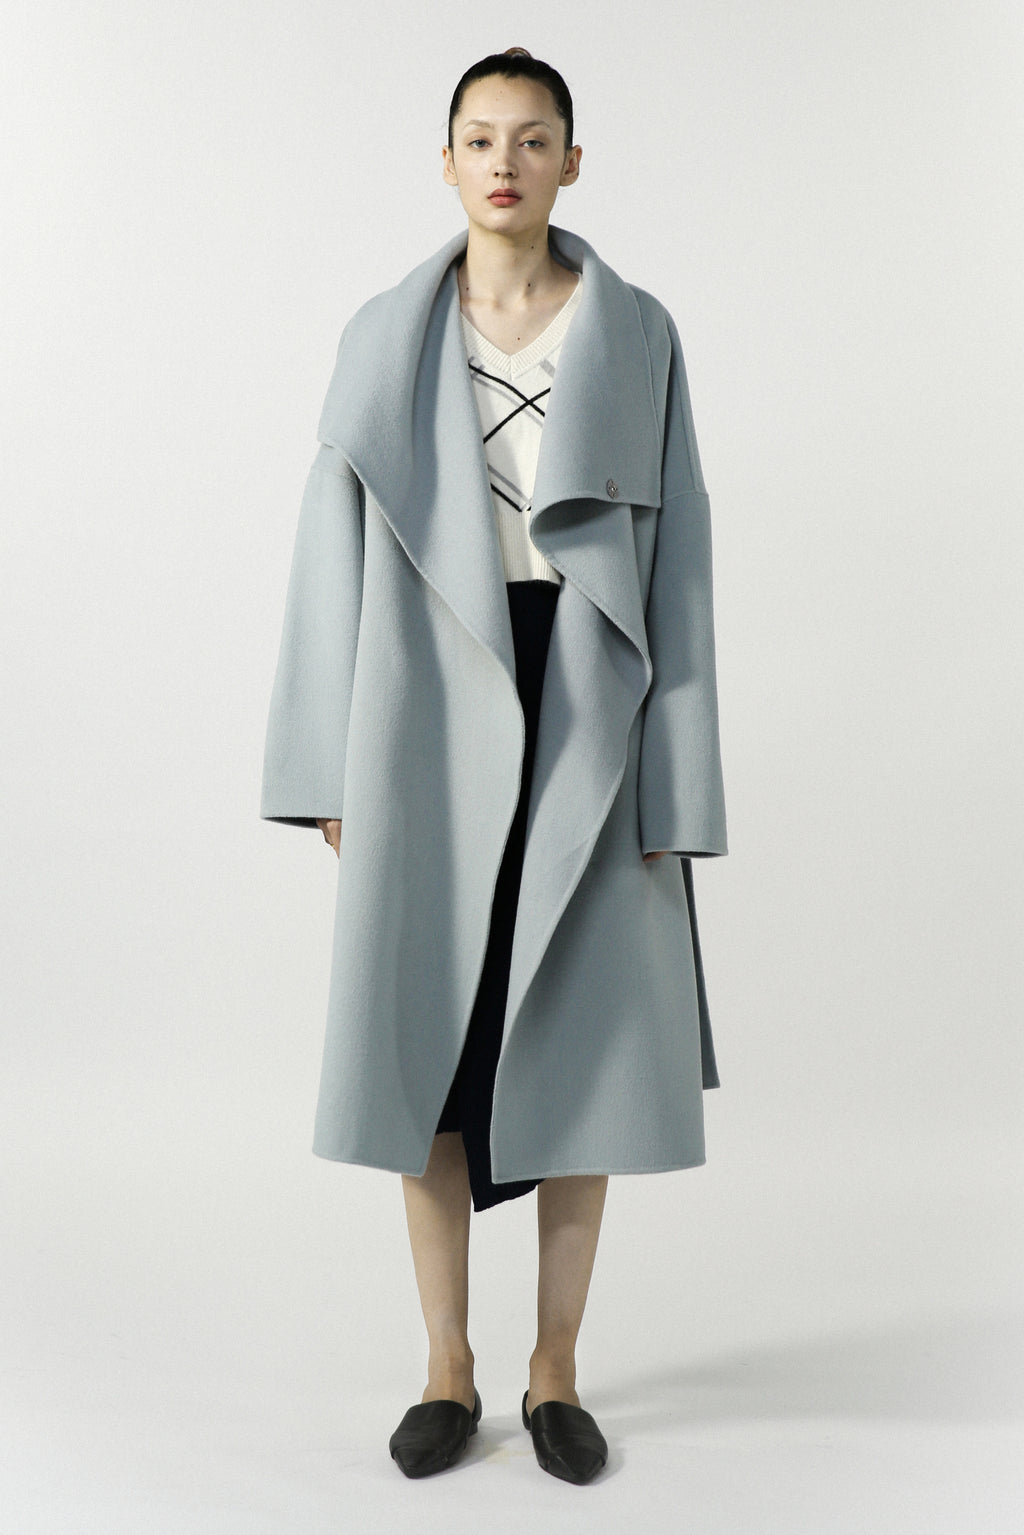 Double faced overcoat with large lapel